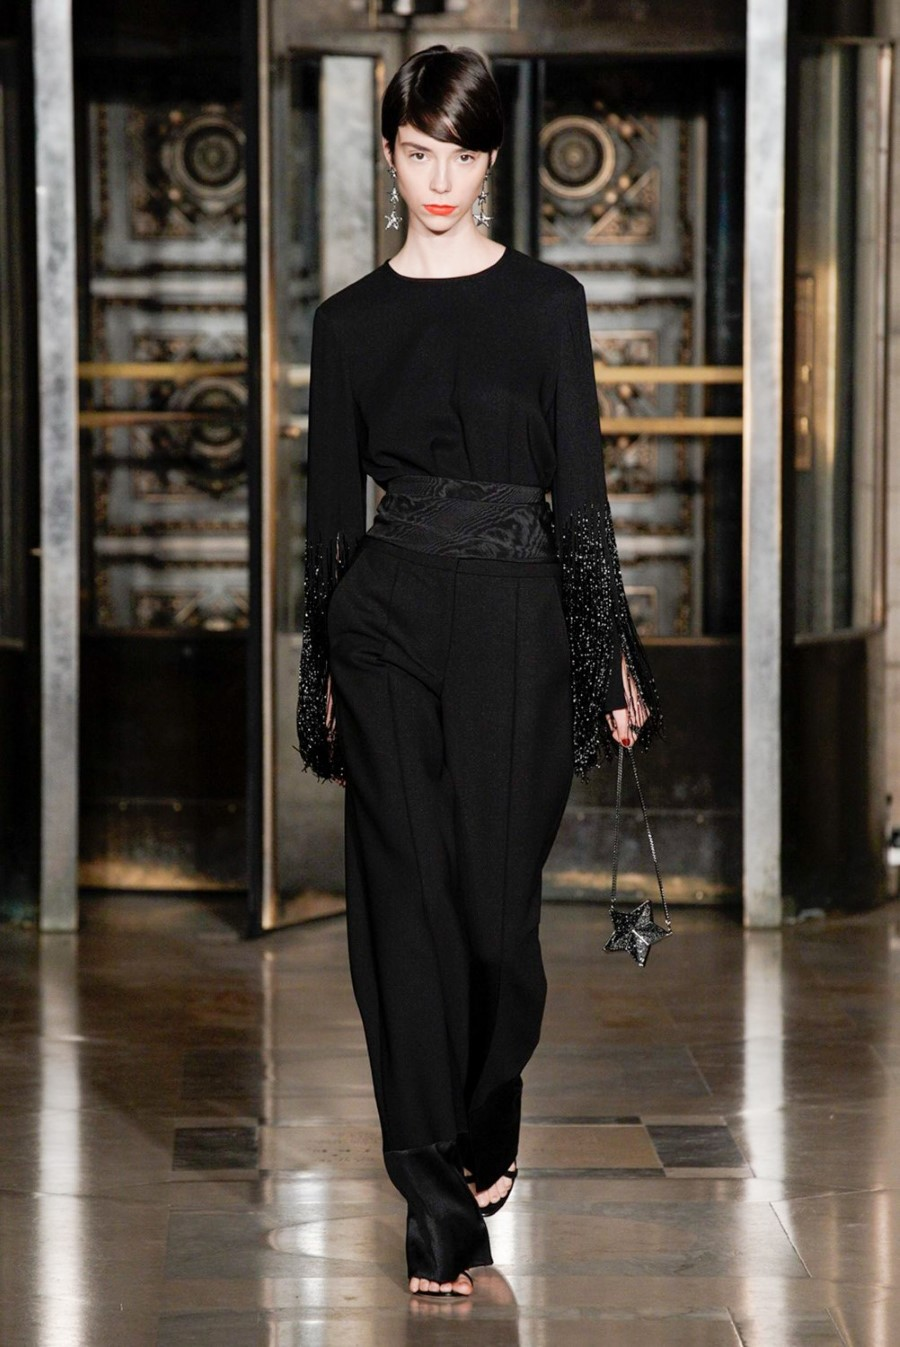 Oscar de la Renta - Fall Winter 2020 - New York Fashion Week